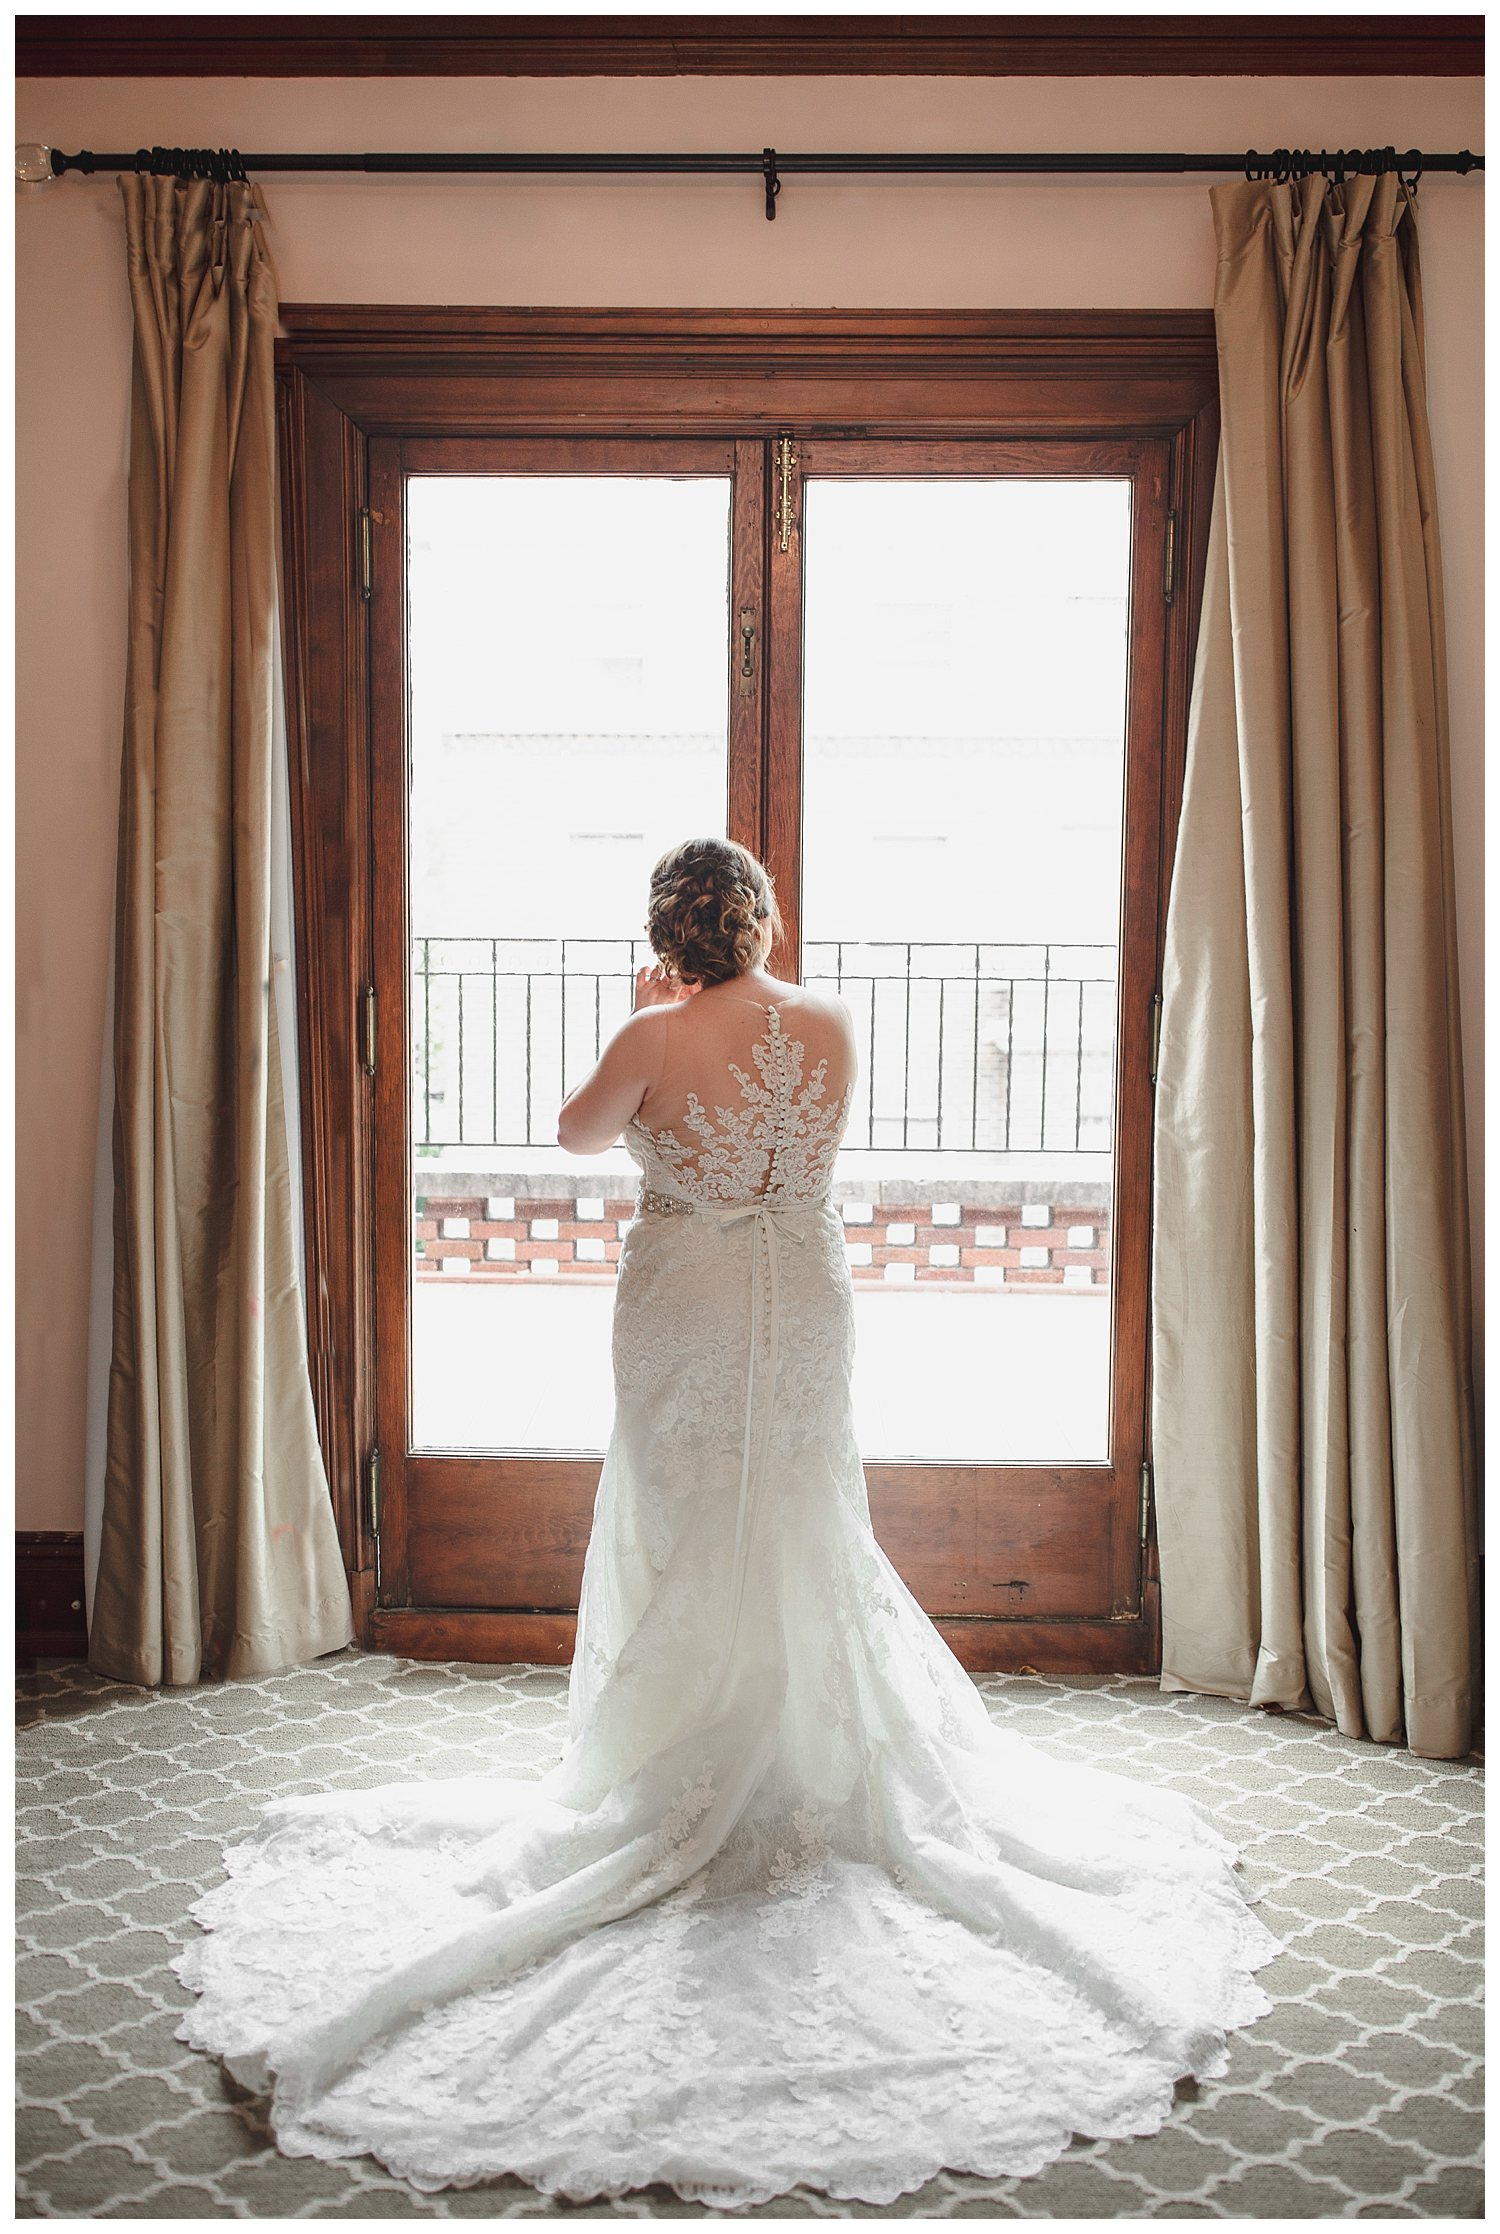 Kelsey_Diane_Photography_Loose_Mansion_Wedding_Photography_Kansas_City_Victor_Lyndsay_0116.jpg